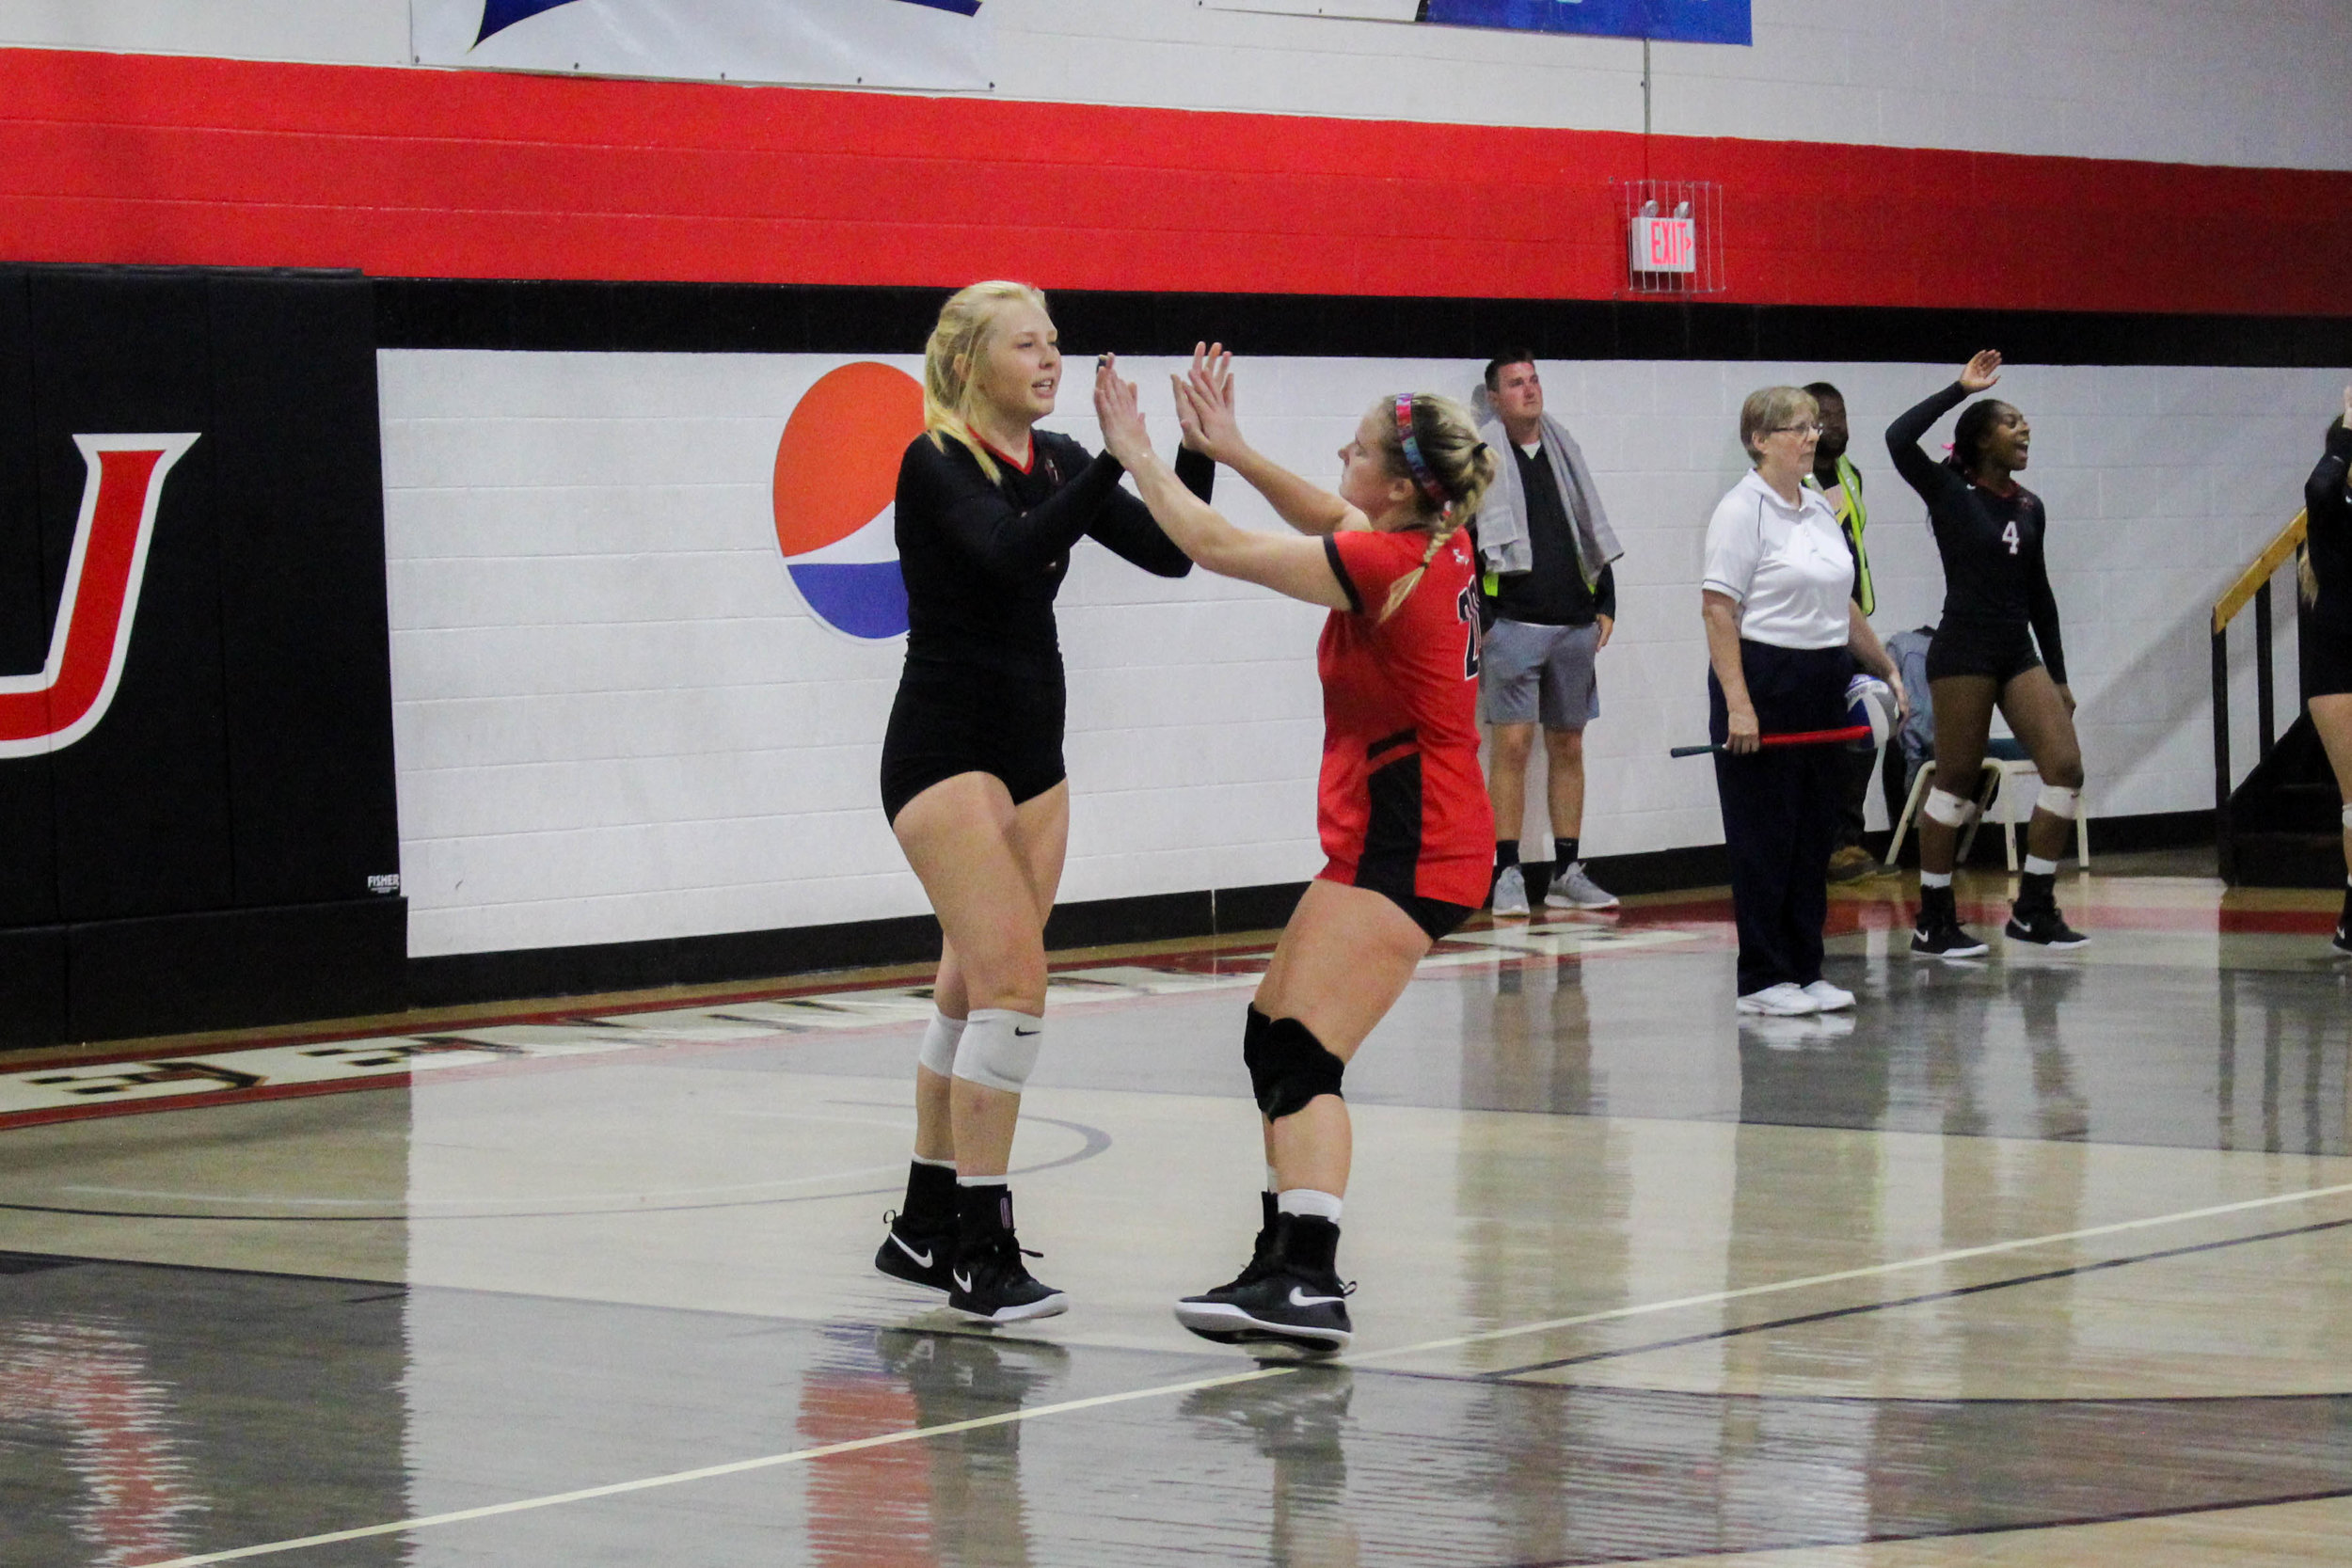 Freshman Whitley Kahler (20) congratulates senior Sara Miller (11) after Miller served a ball that resulted in a point for NGU.